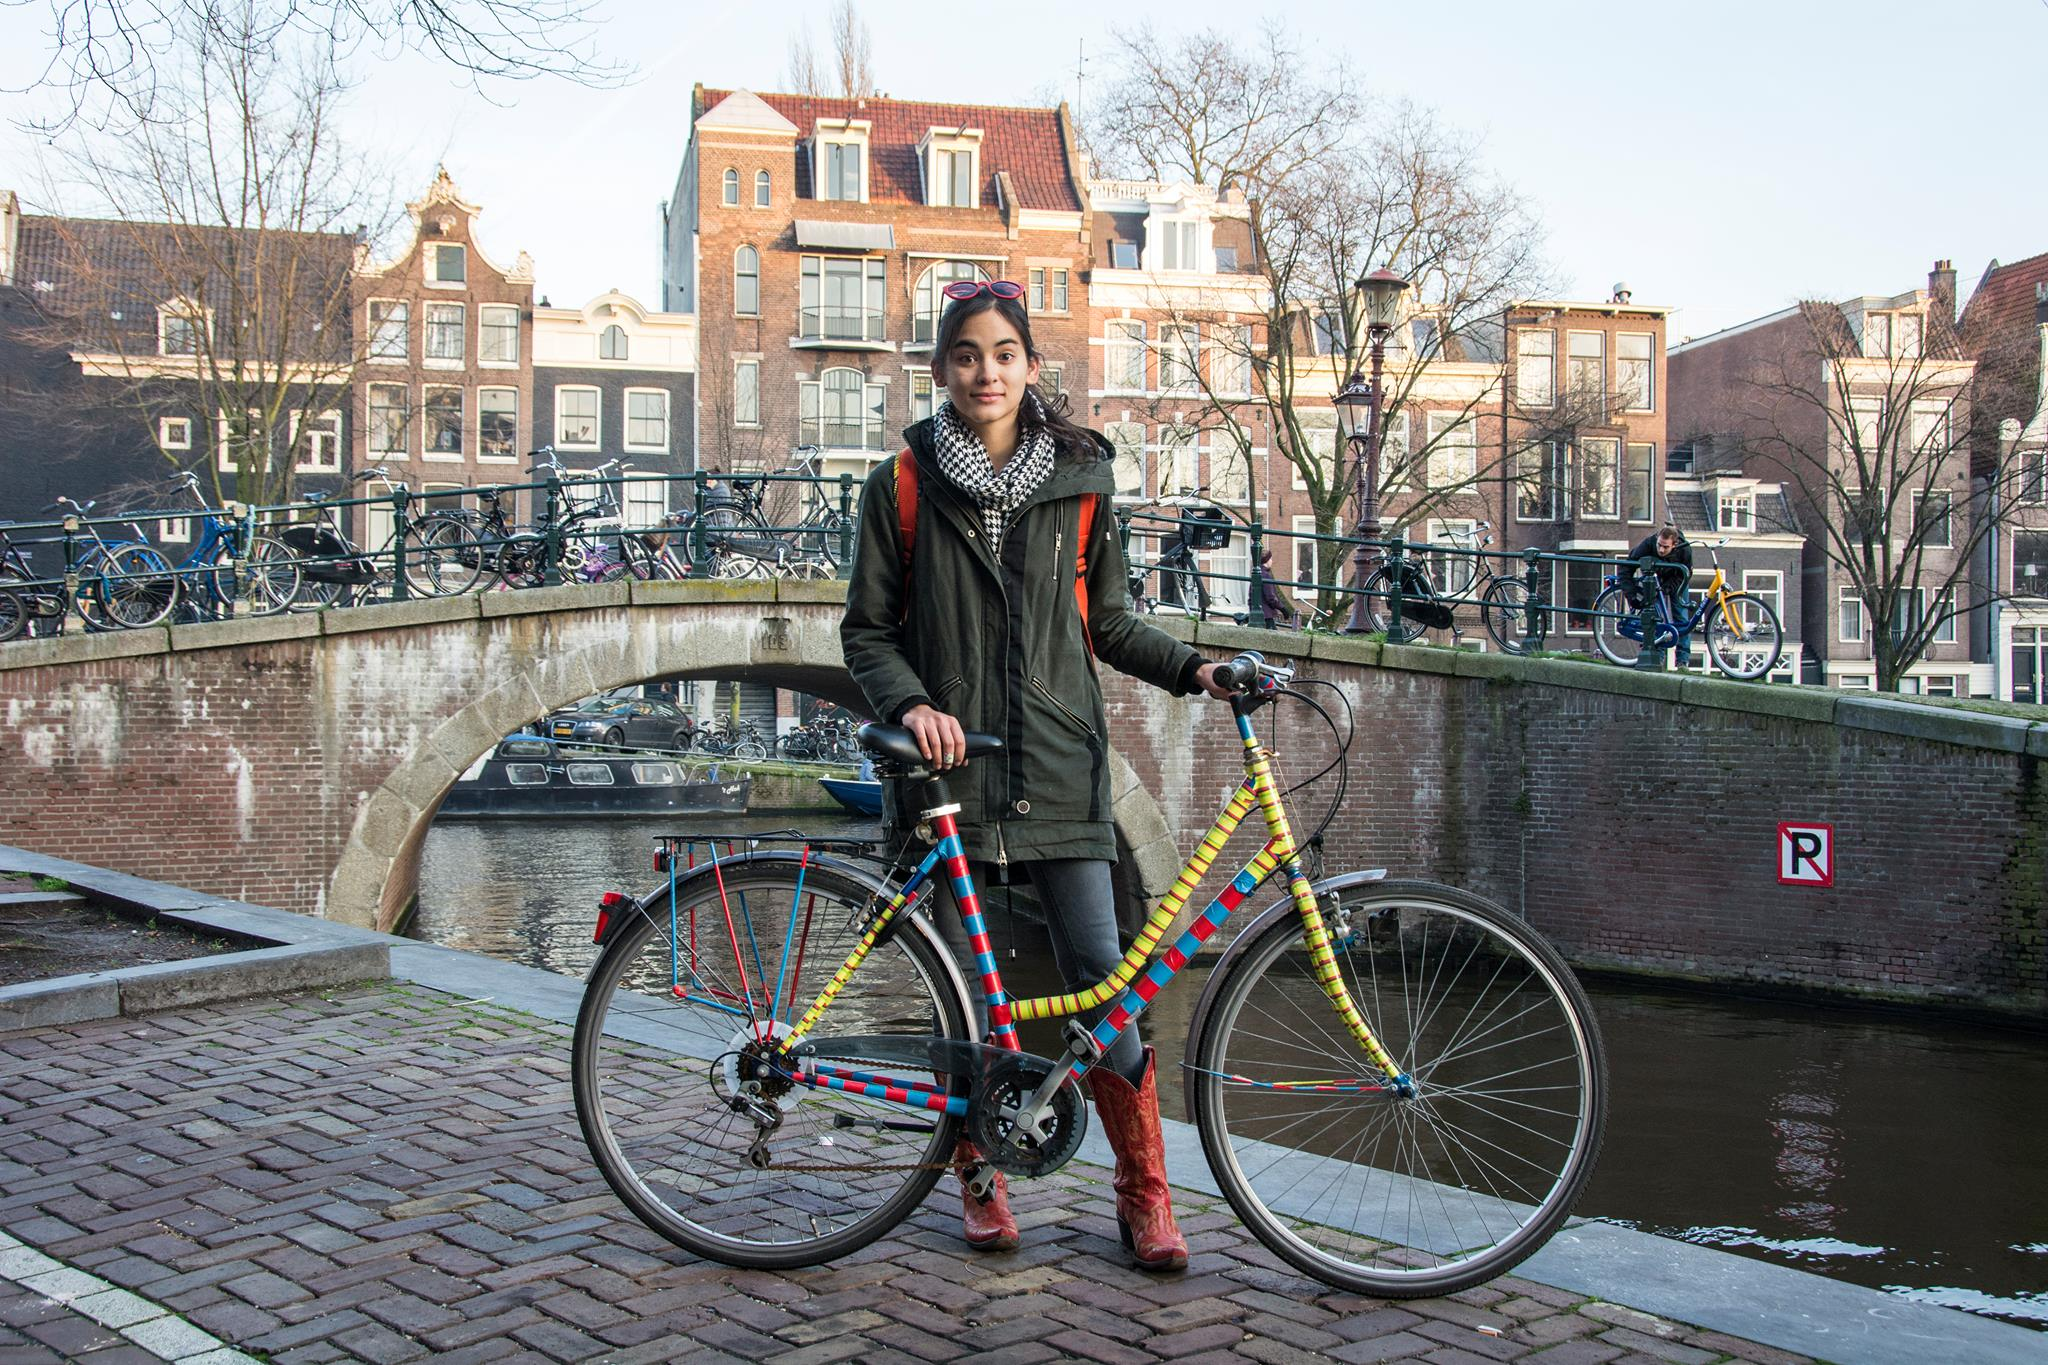 About Lost With Purpose travel blog - Alex with bike in Amsterdam, Netherlands